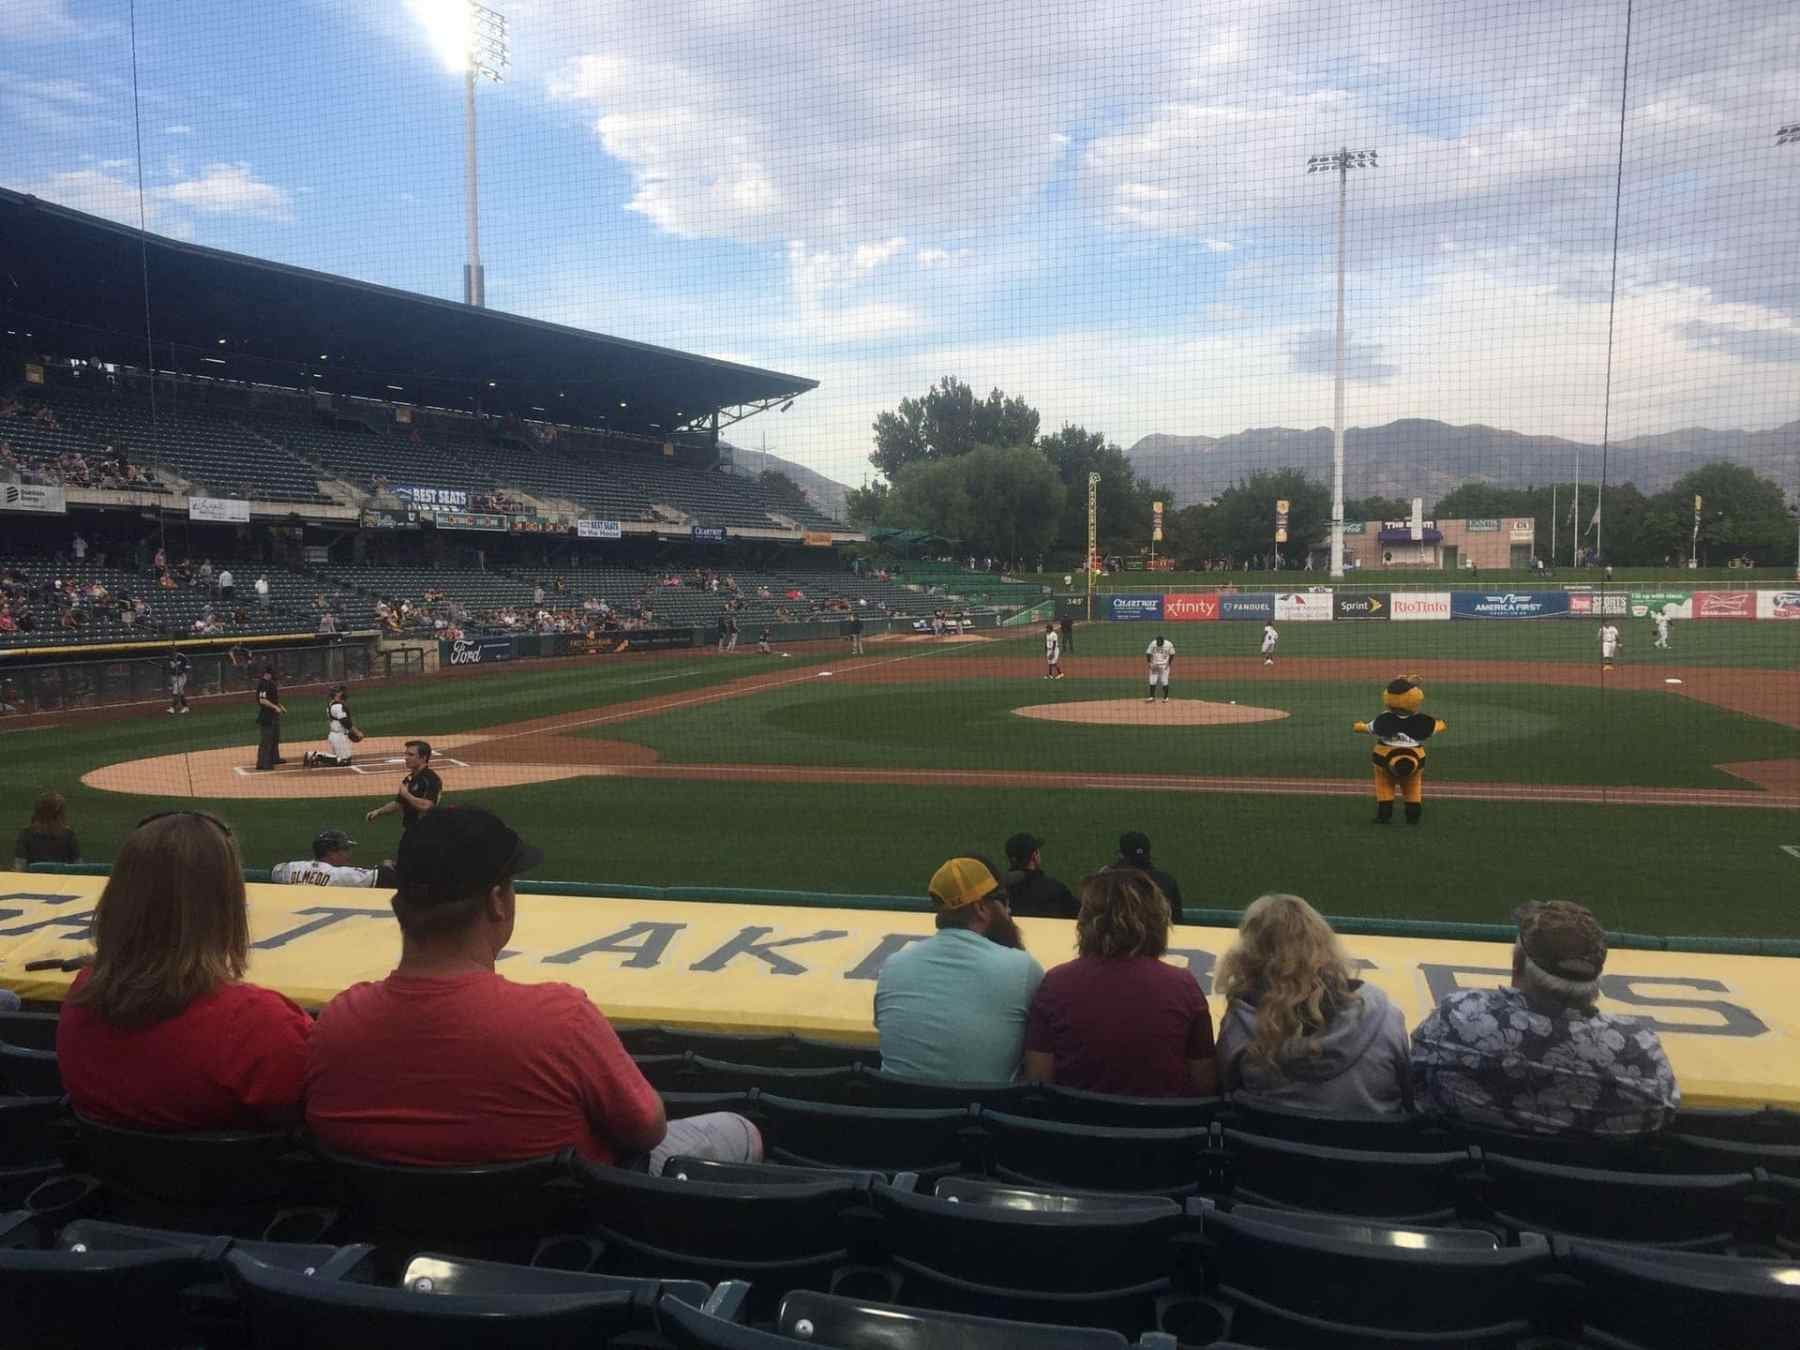 Salt Lake City Bee's- minor league baseball